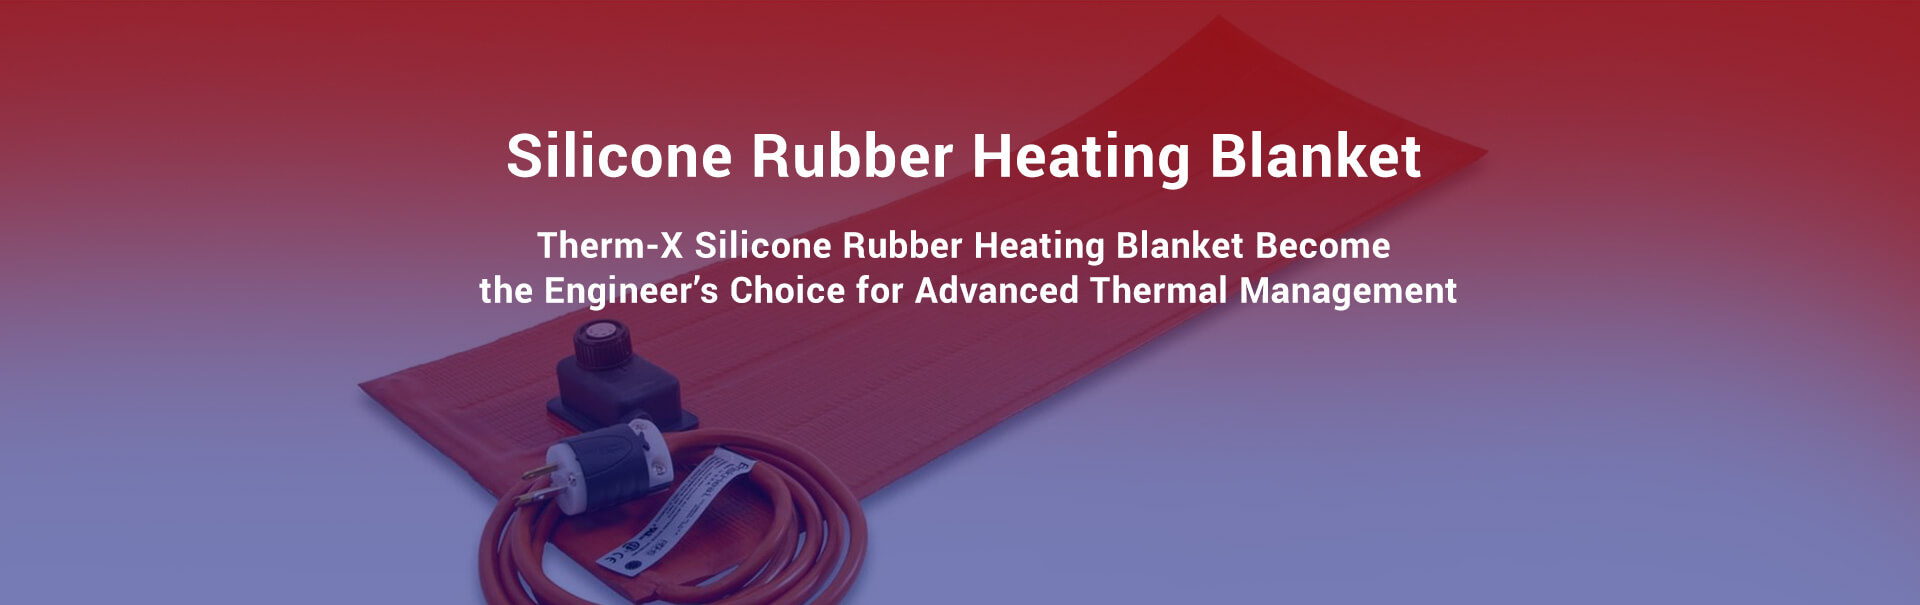 Silicone Rubber Heating Blanket